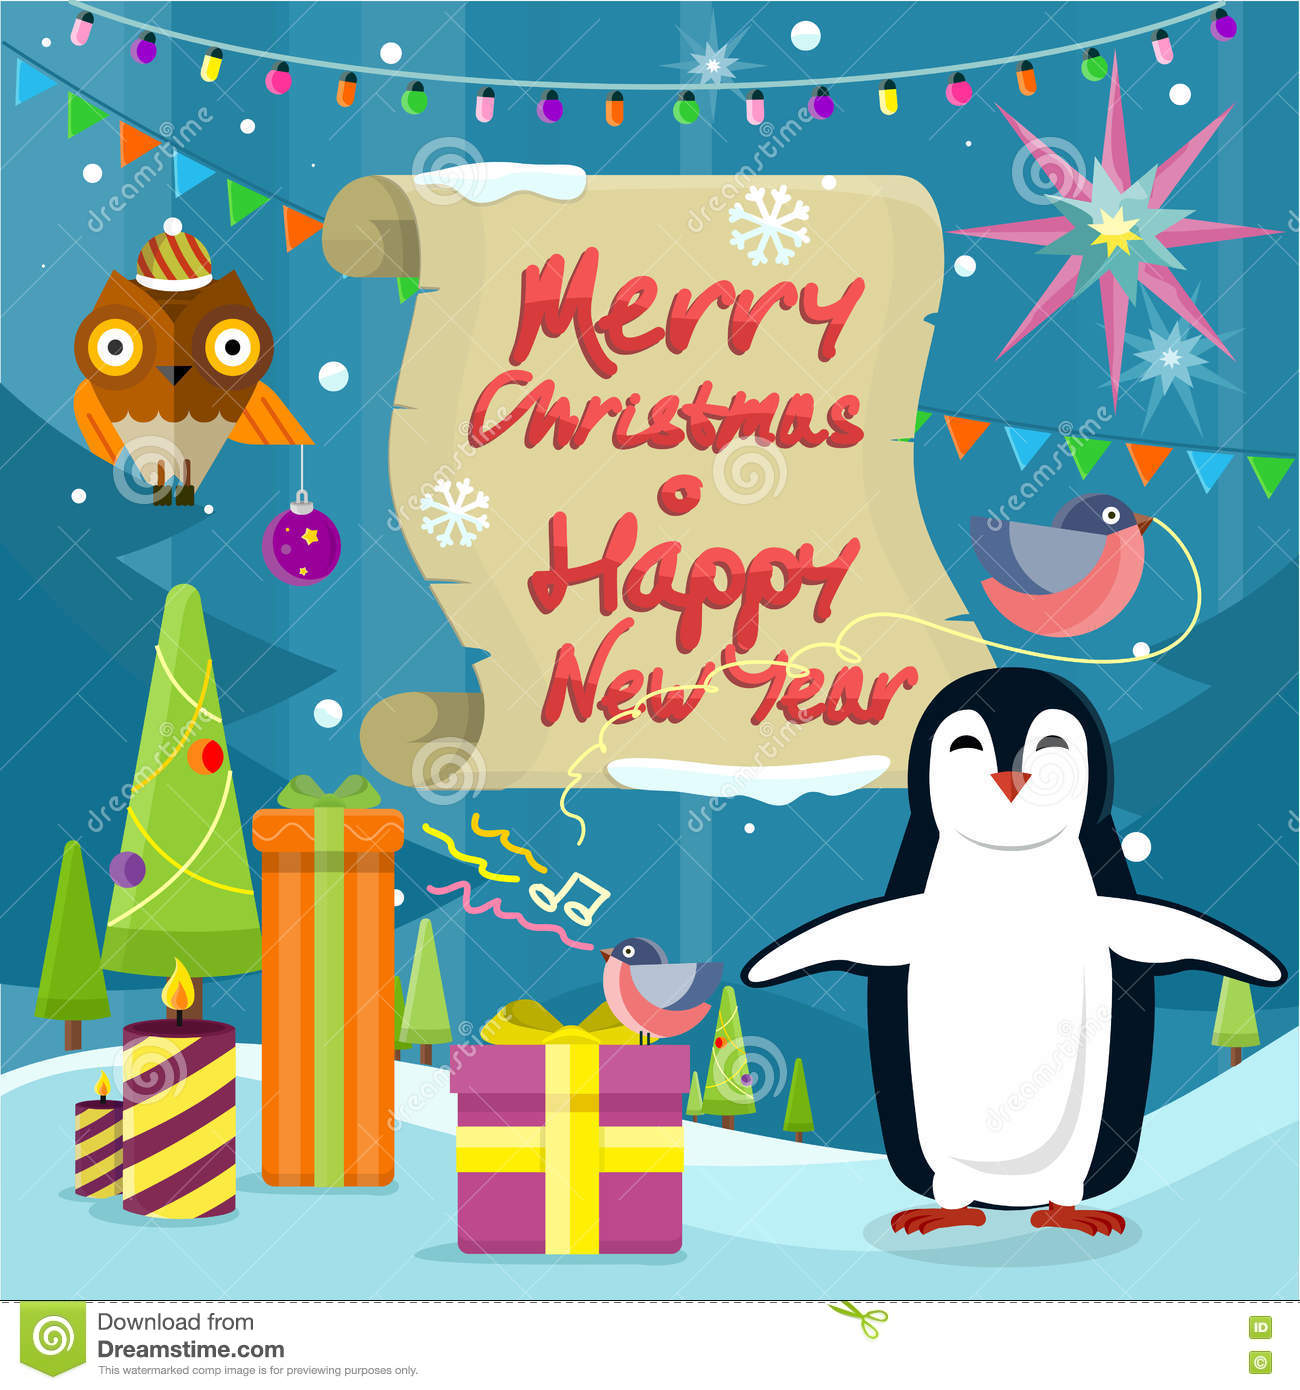 283f72c89ea99 Merry Christmas And Happy New Year Poster Penguins Stock Vector ...